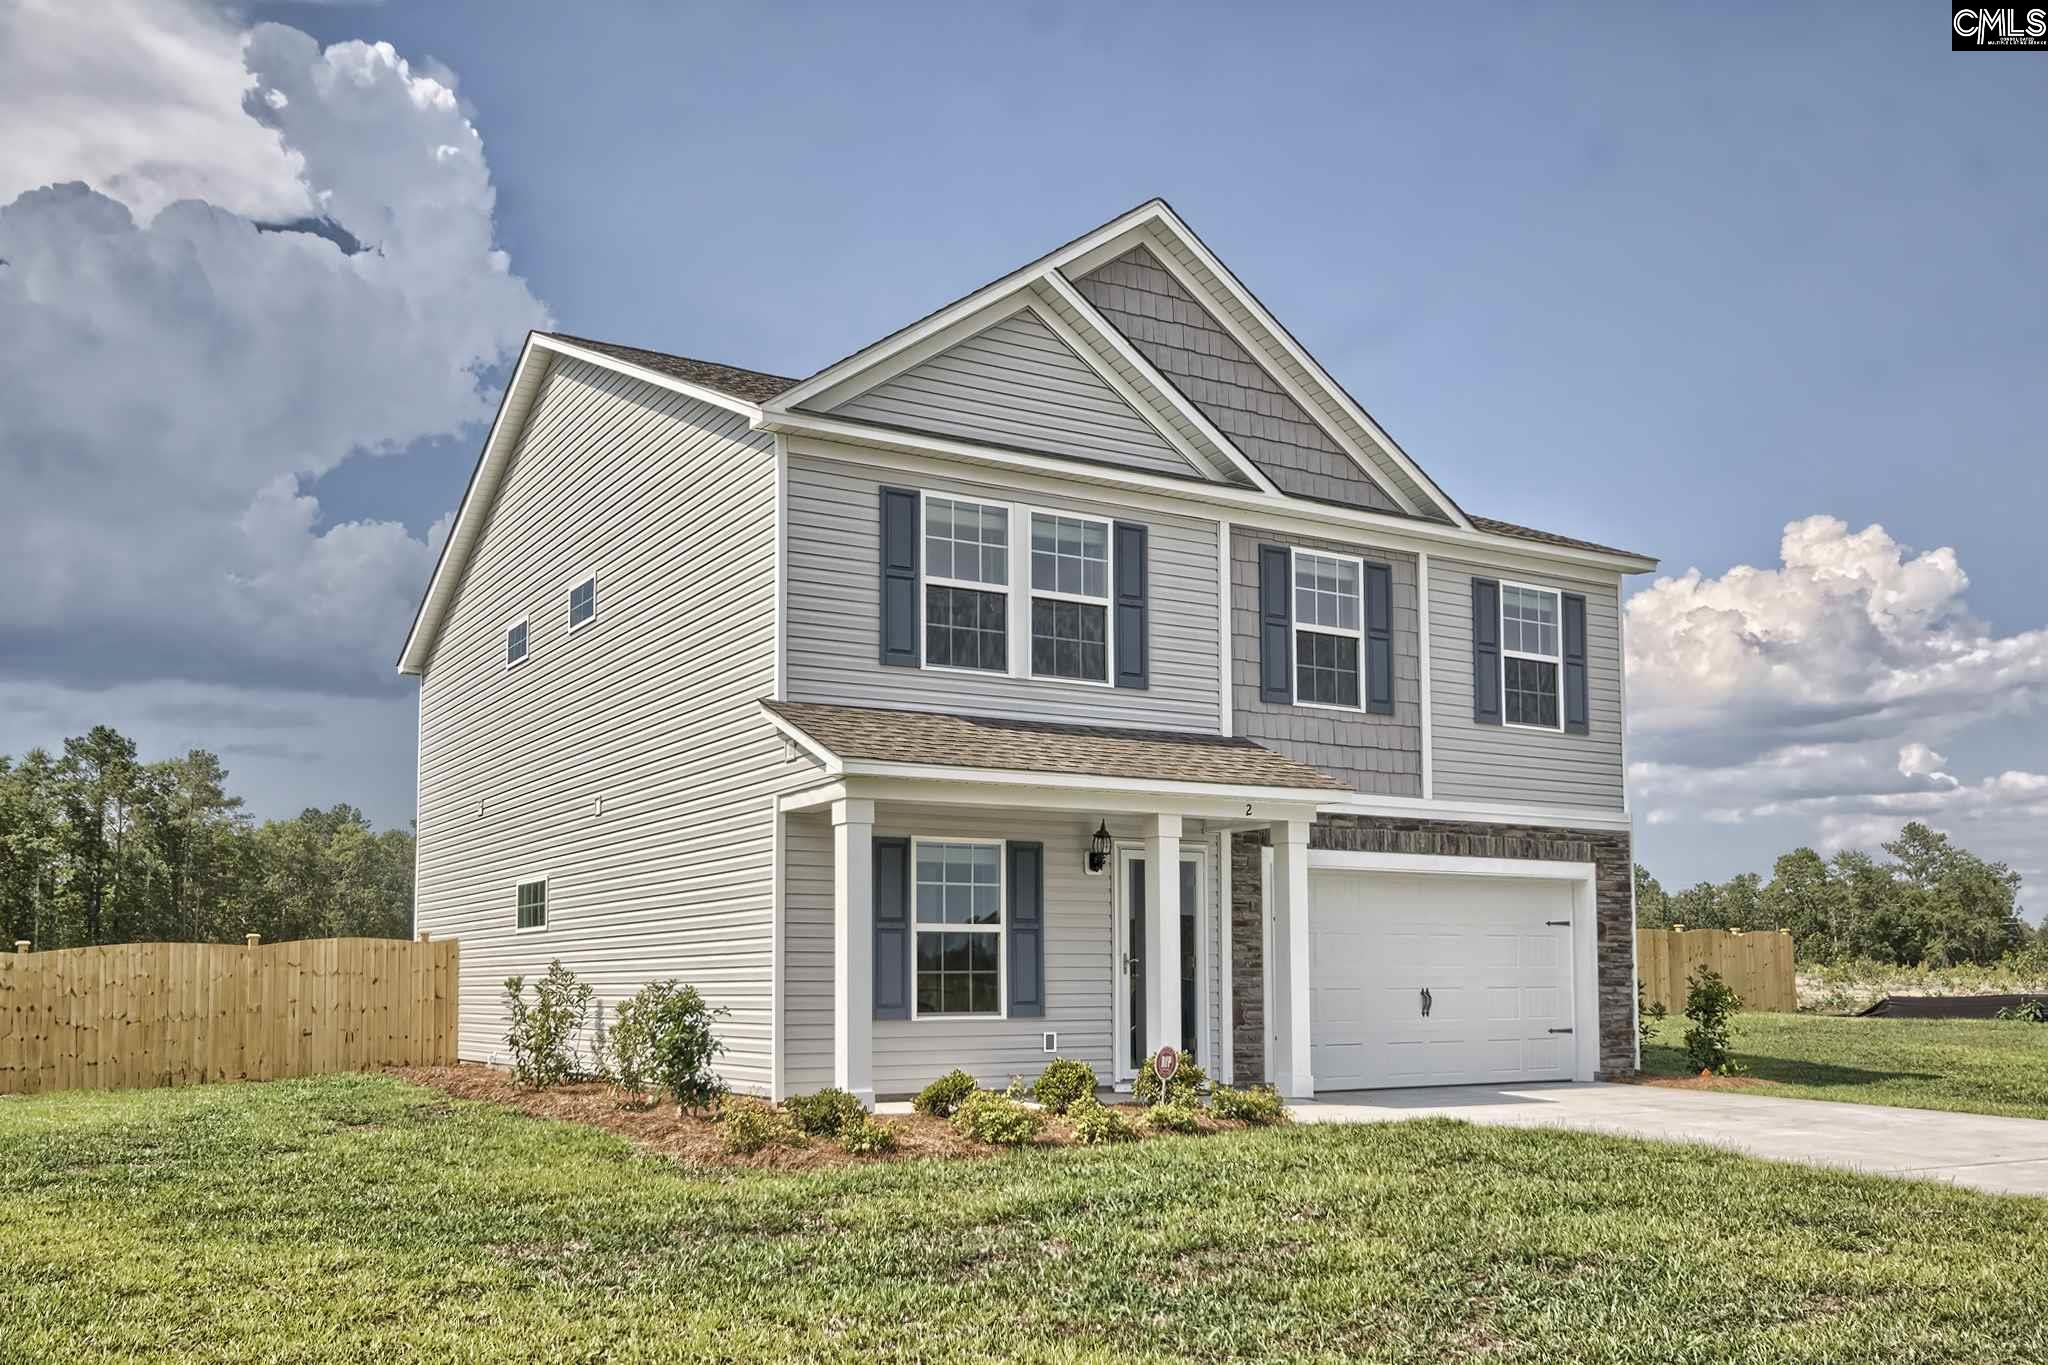 353 Summer Creek (lot 22) West Columbia, SC 29172